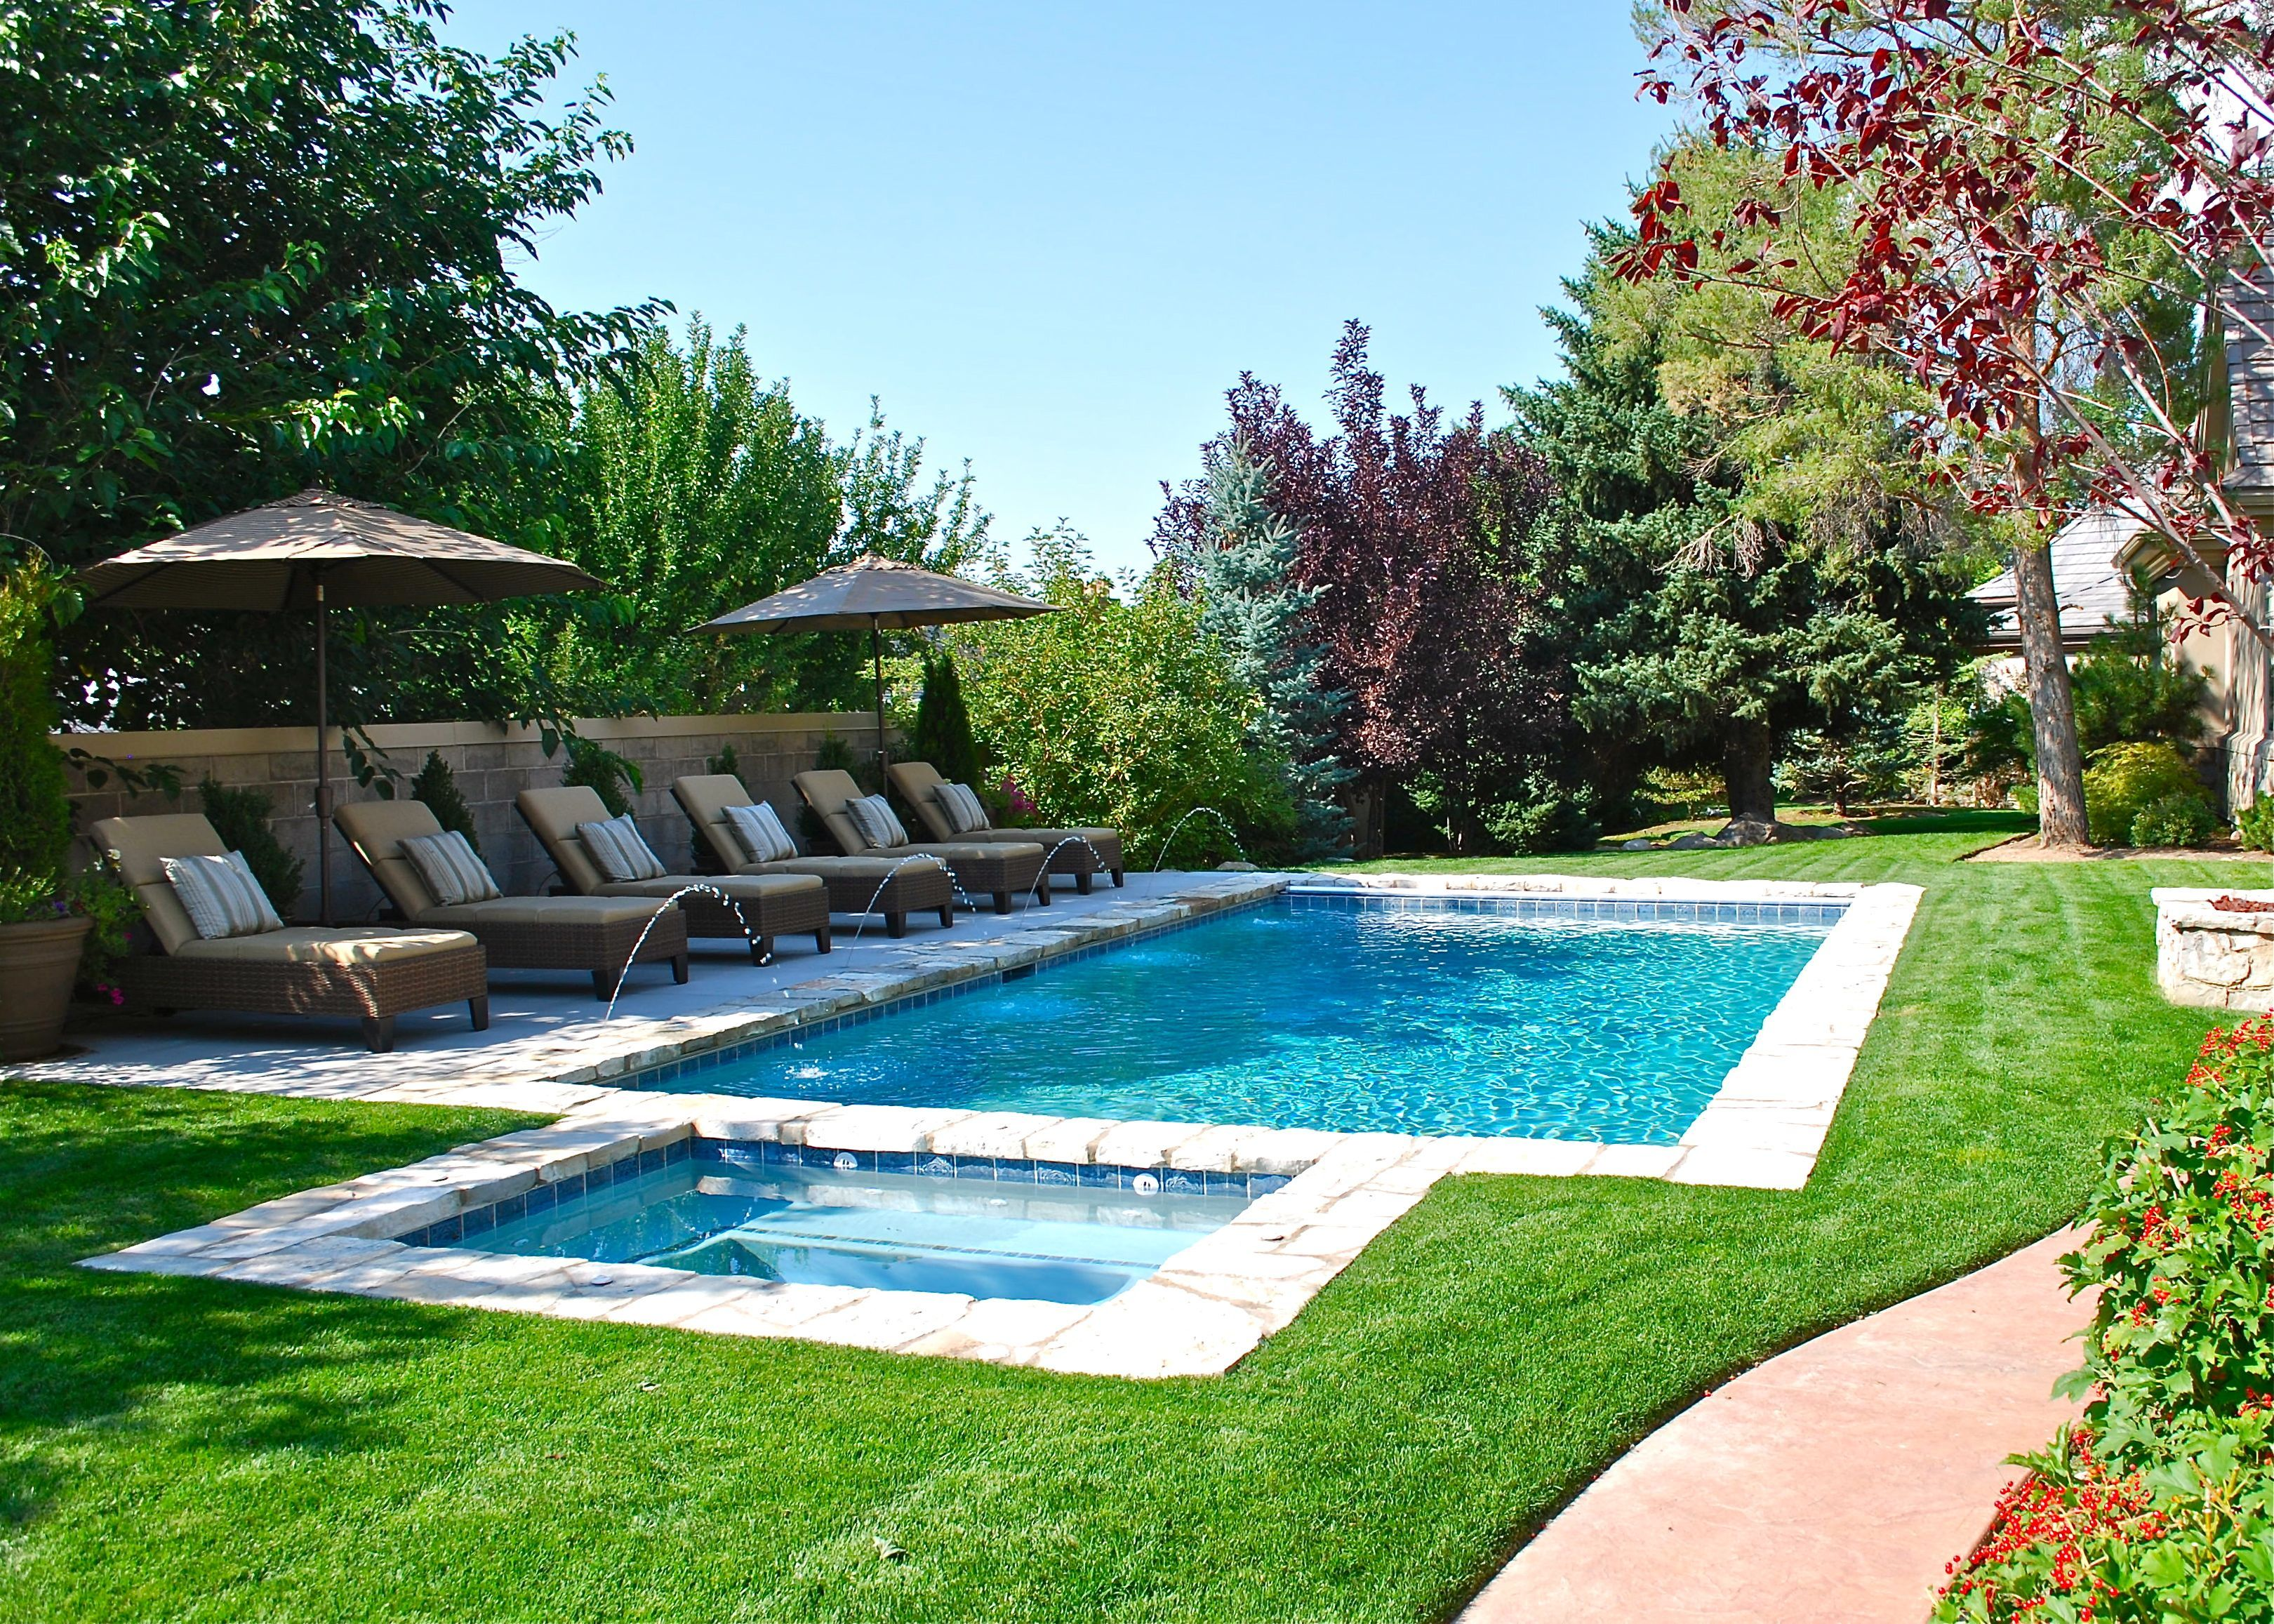 Backyard swimming pool with minimal decking deckjets and for Pool landscapes ideas pictures